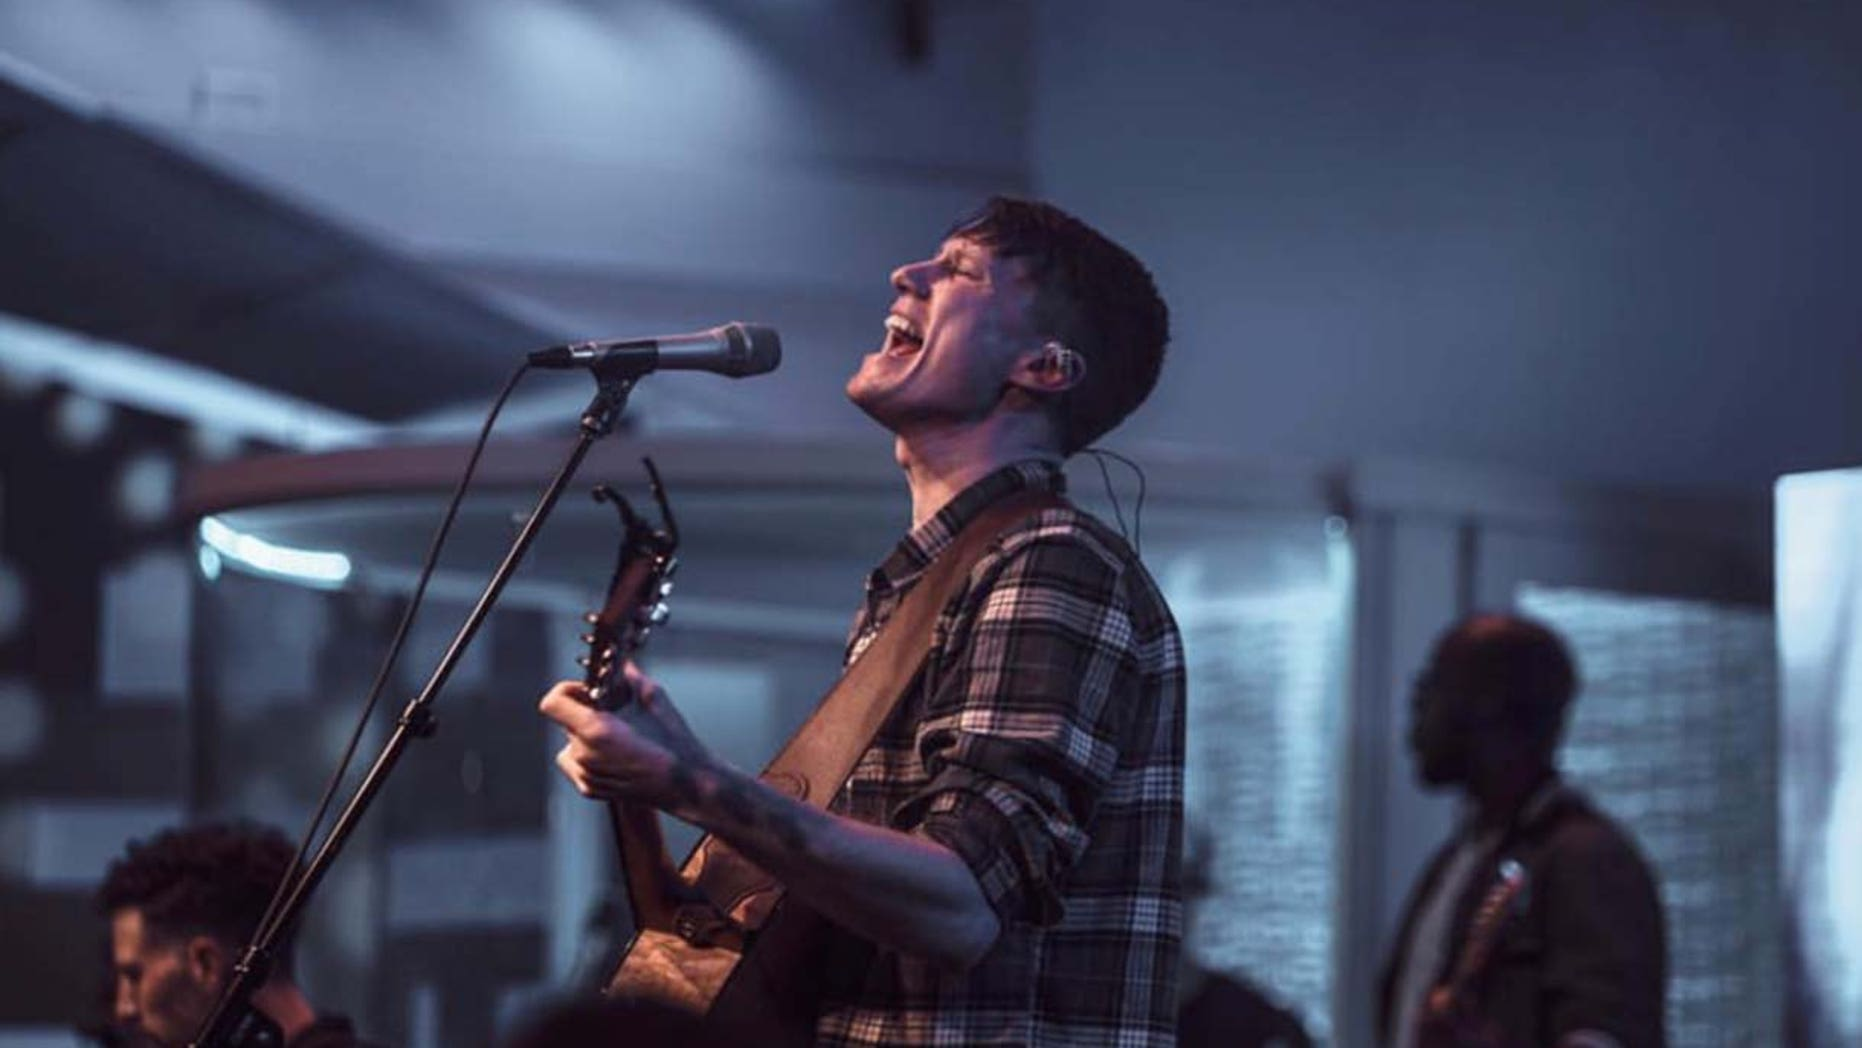 Phil King, a NxtGen Worship Pastor at Gateway Church in Dallas, Texas, penned a pro-life song in light of New York state passing a new abortion law.